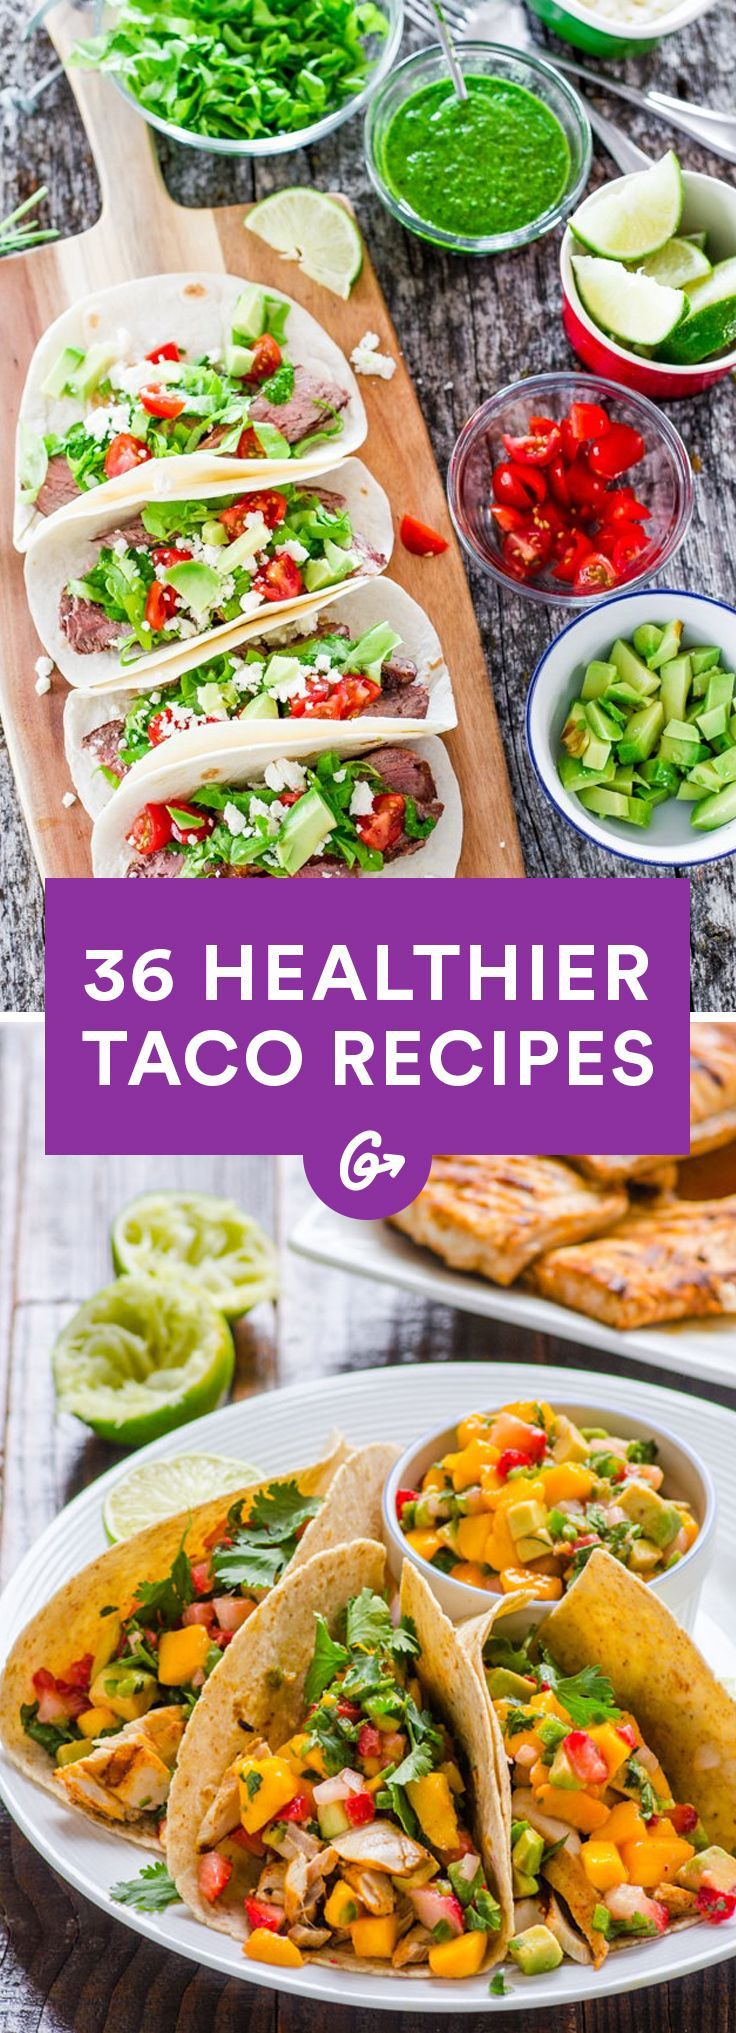 From roasted vegetable to buffalo chicken to chocolate (oh yeah!) and more, these recipes will leave you satisfied  #tacos #recipes #healthy http://greatist.com/eat/healthy-taco-recipes